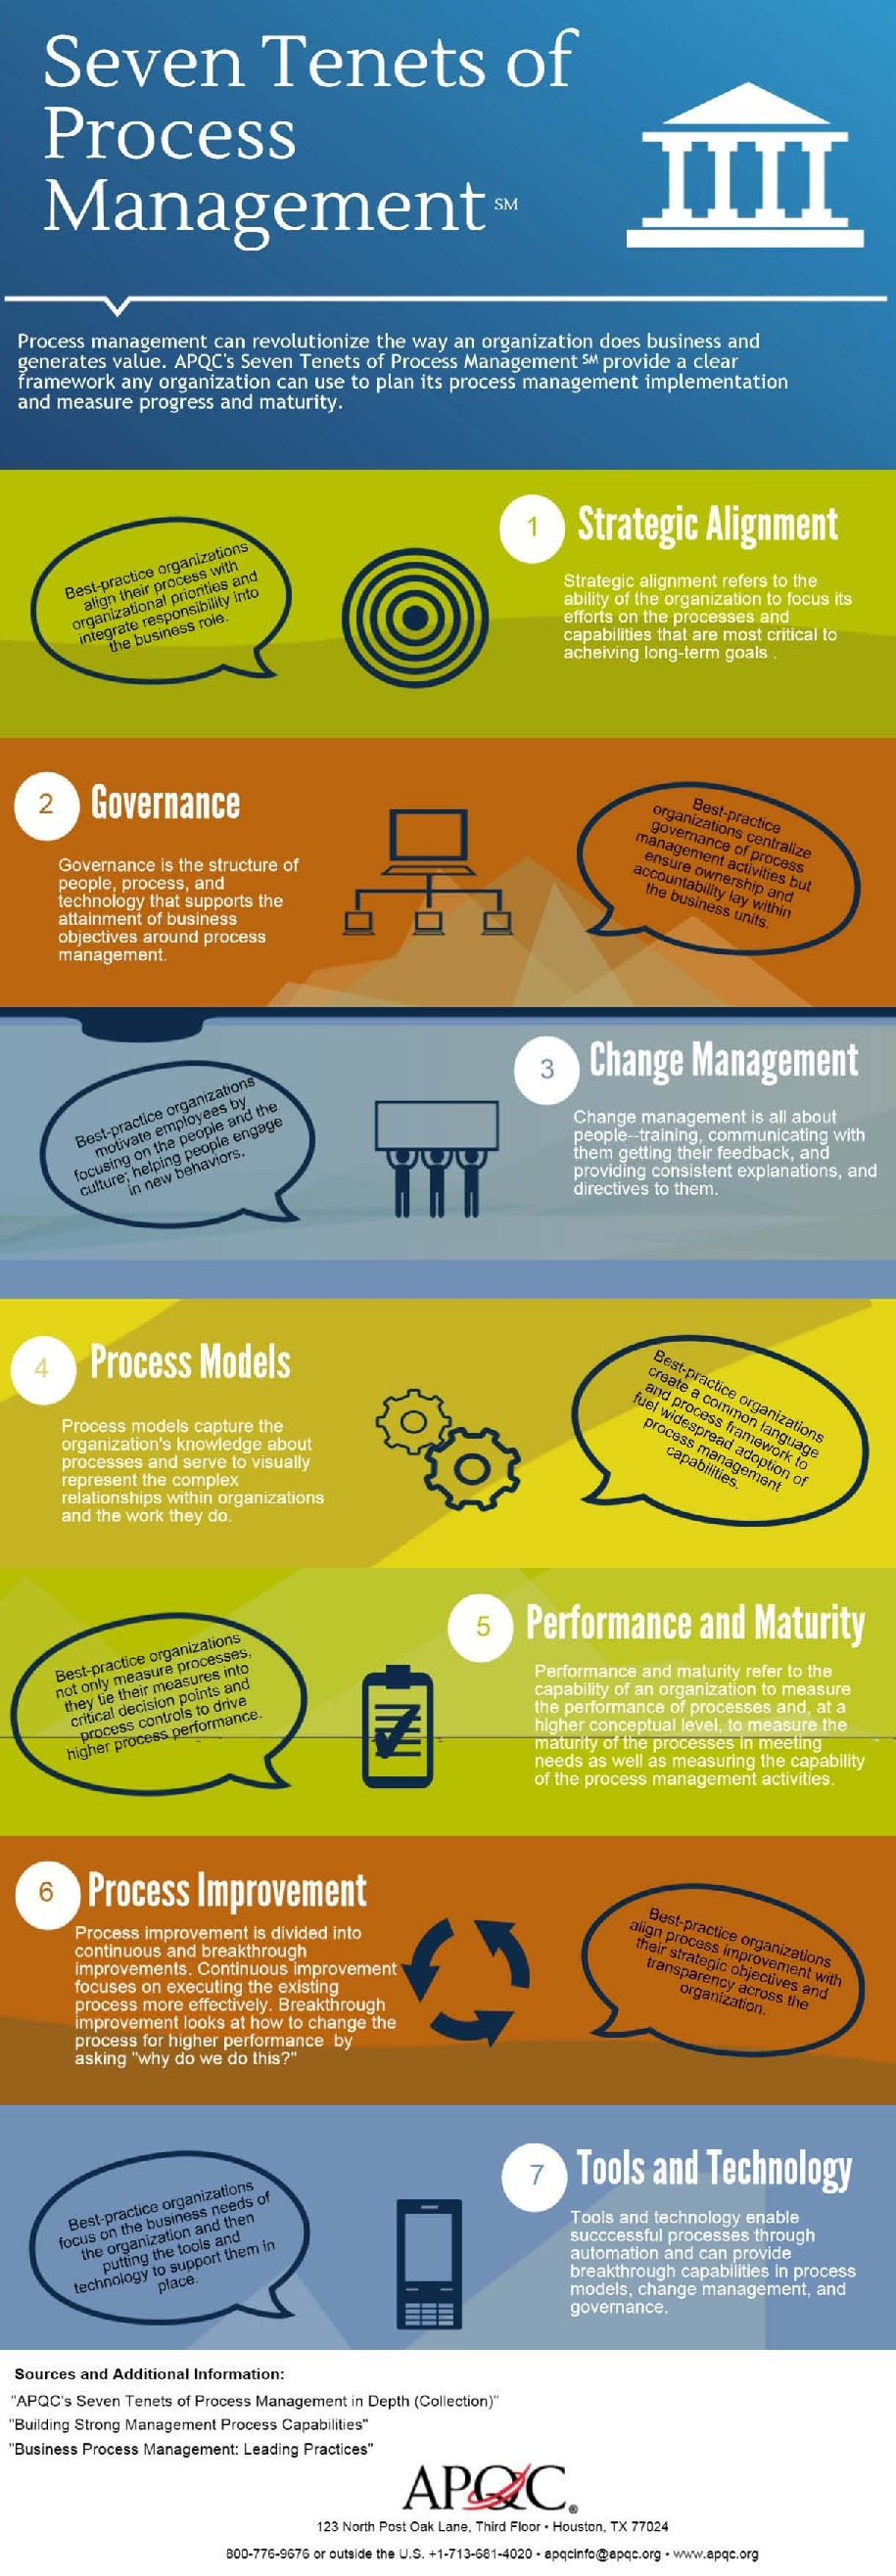 Process excellence network tag apqc process management can revolutionize the way an organization does business and generates value this infographic from apqc illustrates the seven tenets of fandeluxe Image collections